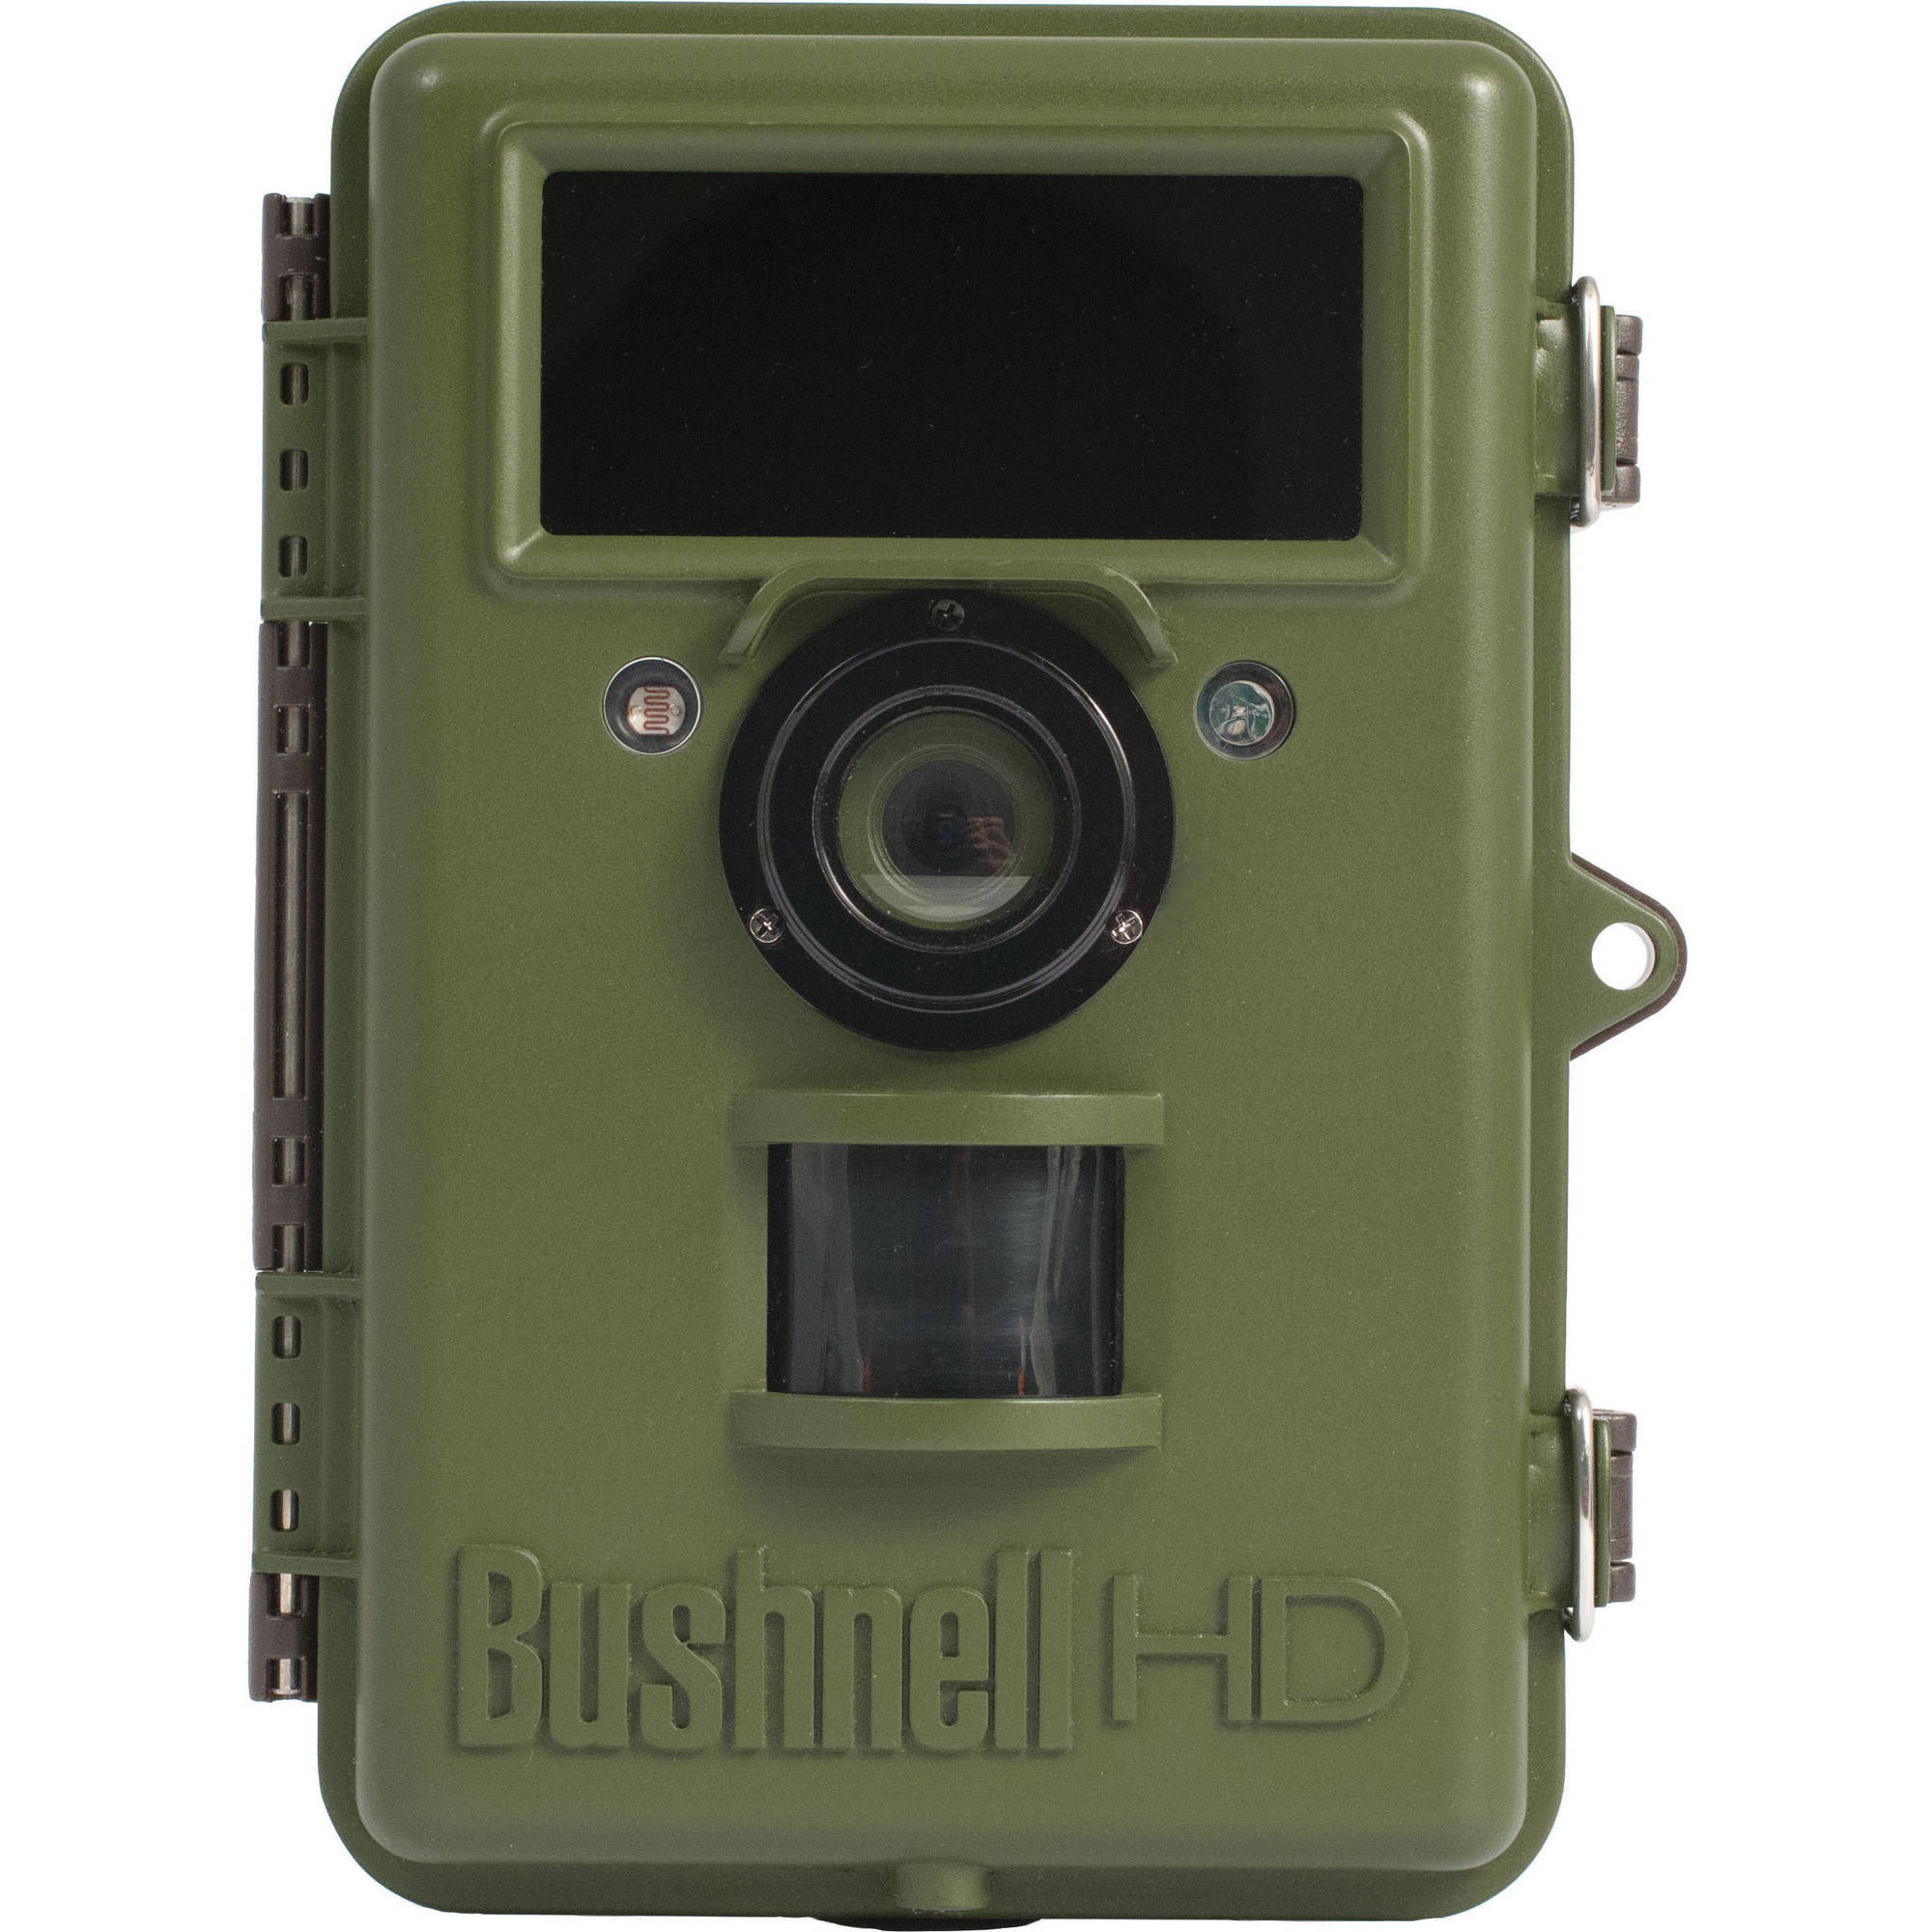 110458 Bushnell NatureView HD Cam, Olive Drab, 8 MP Night Vision